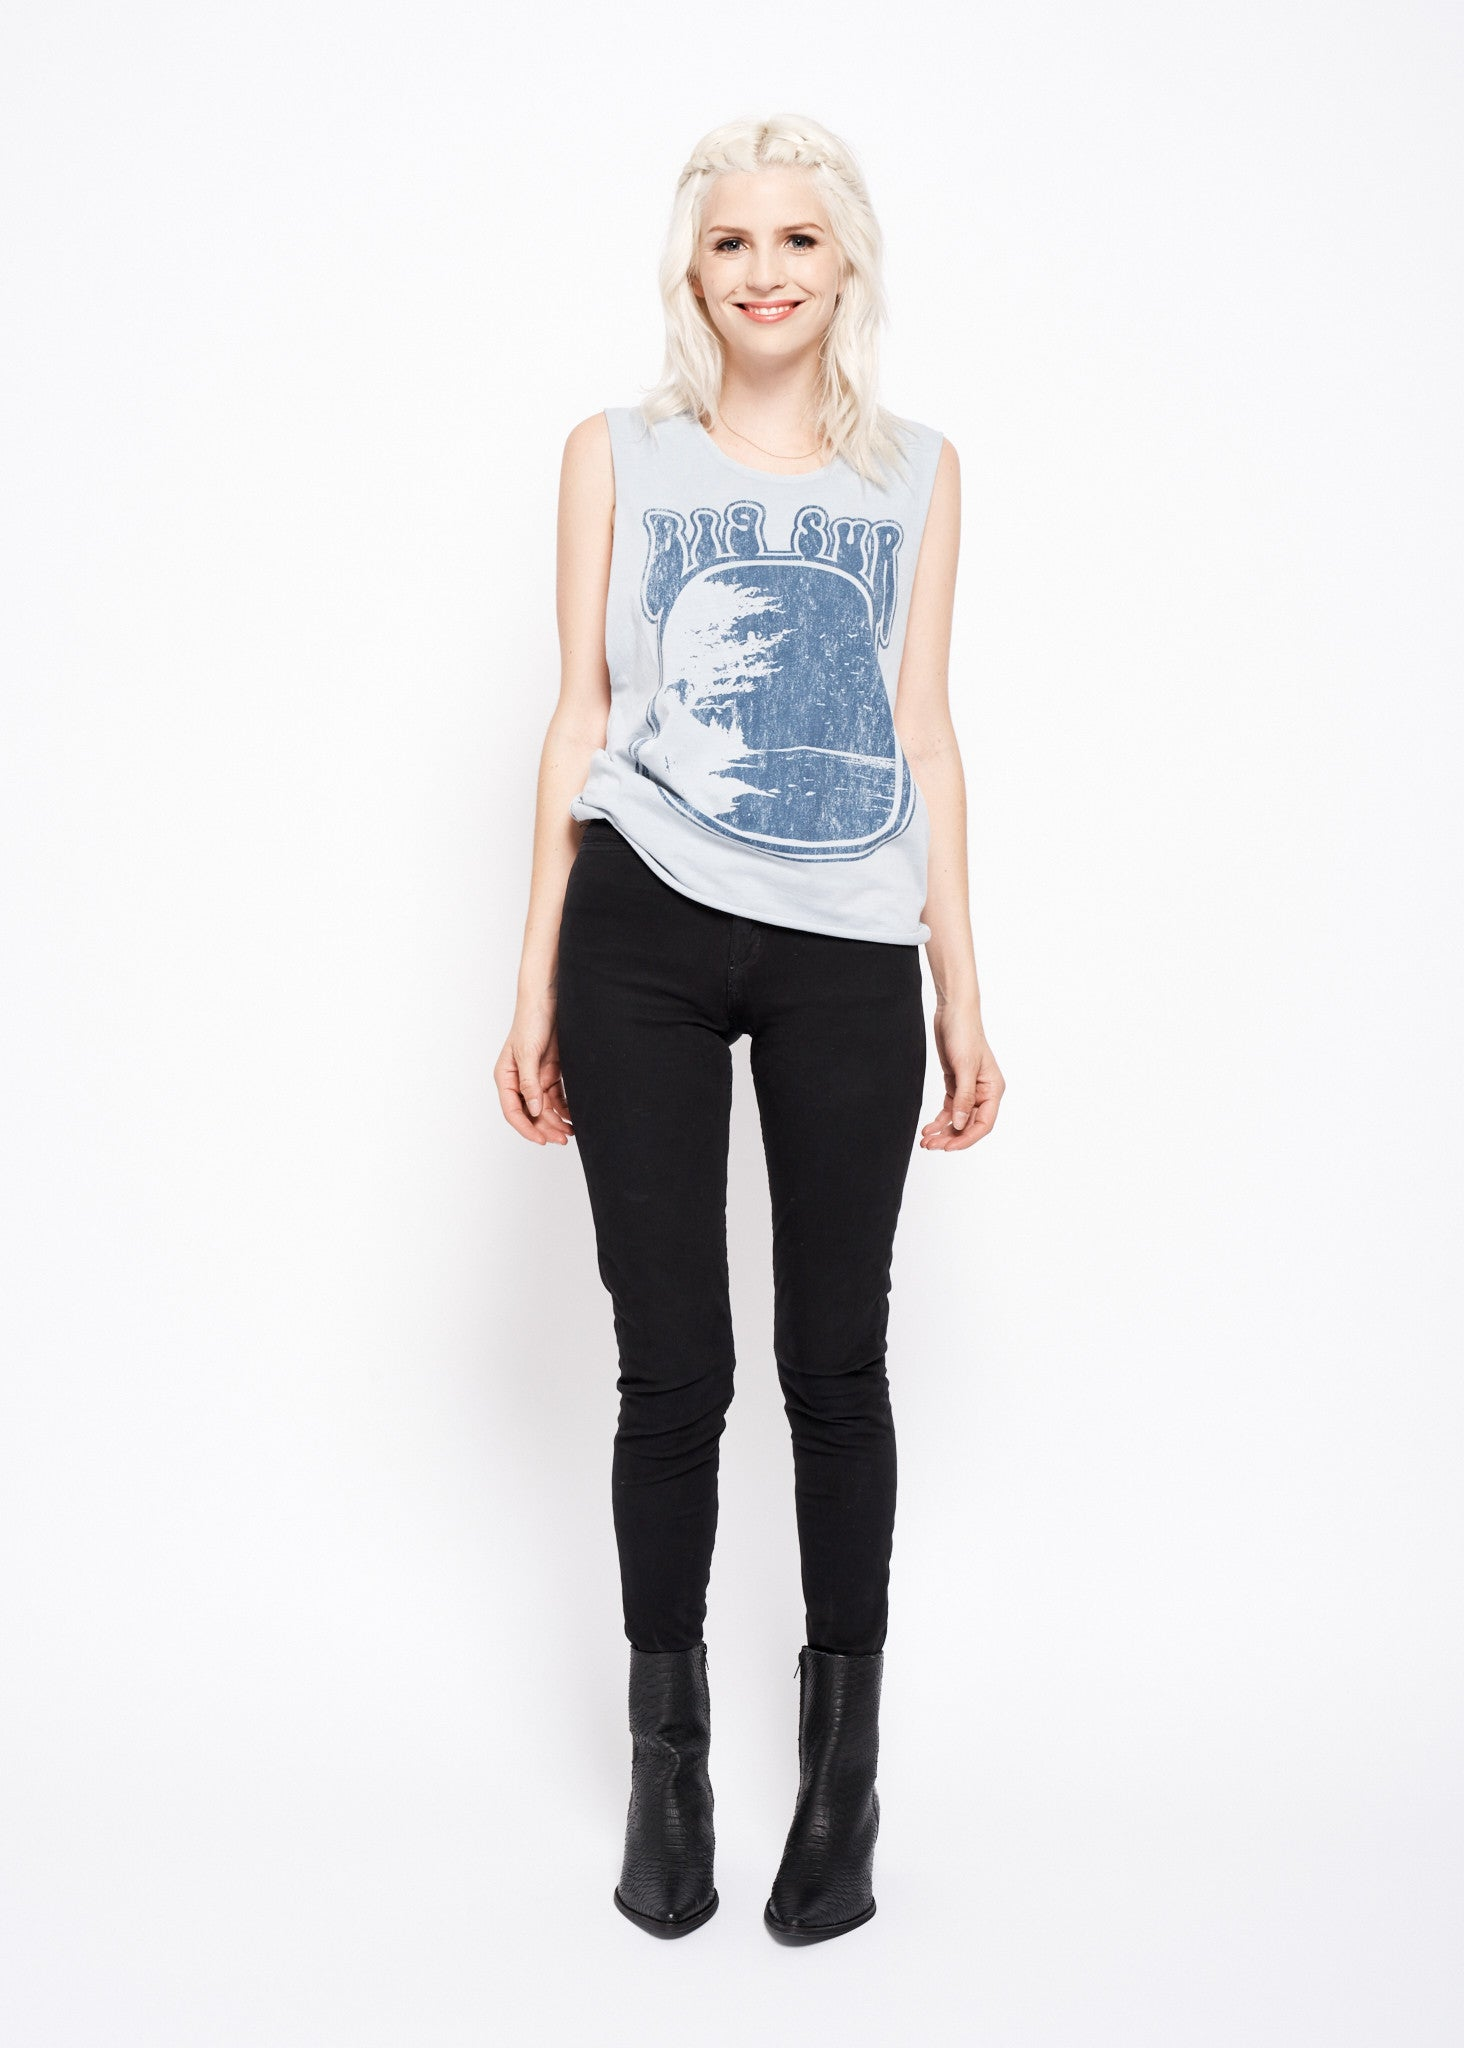 Big Sur Muscle Tee - Sky Blue Stone Wash with Blue Print - Women's Lace Tank - Midnight Rider